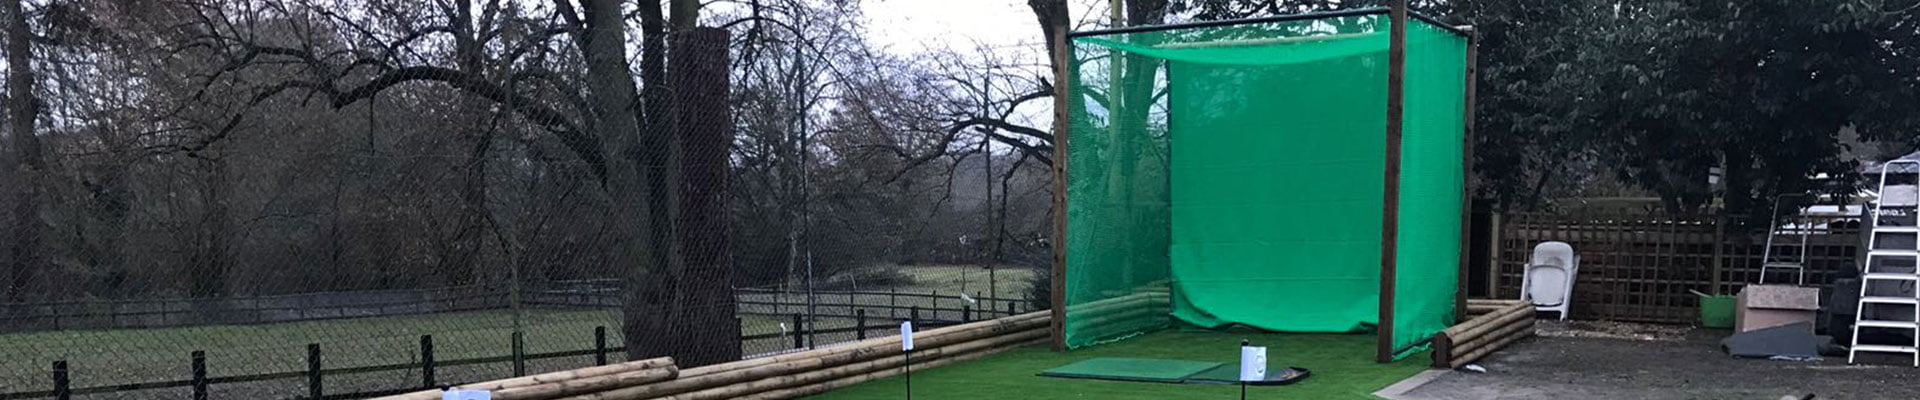 Our Pro Practice Cage is an ideal investment for pros or beginners who want to develop their drives and long shots in a safe and controlled environment.